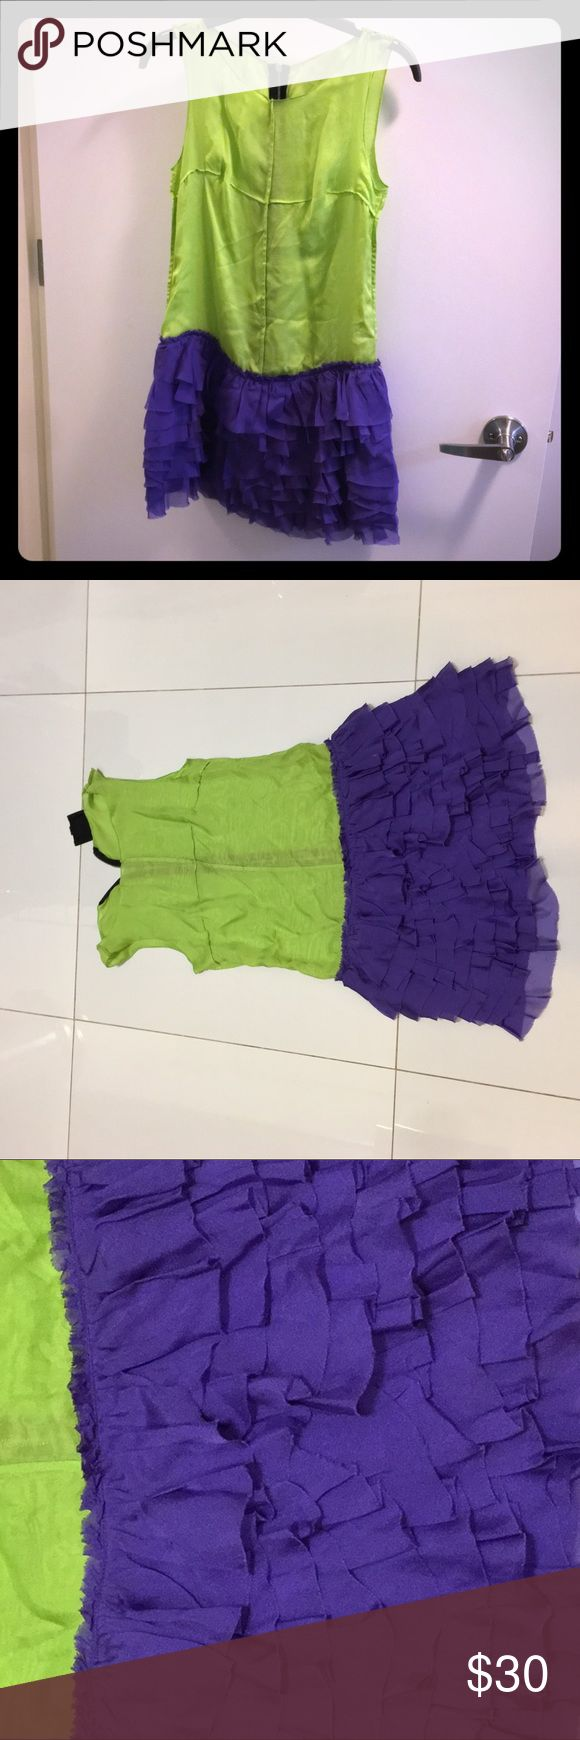 D&G Low-Rise Lime Green Mini Dress Lime green buttress + Purple cup cake ruffle skirt! This unusual color combination has also exposed stitches and zipper in the back.  Fun and easy to wear—perfect for the resort and a day to cruise around town! D&G Dresses Mini